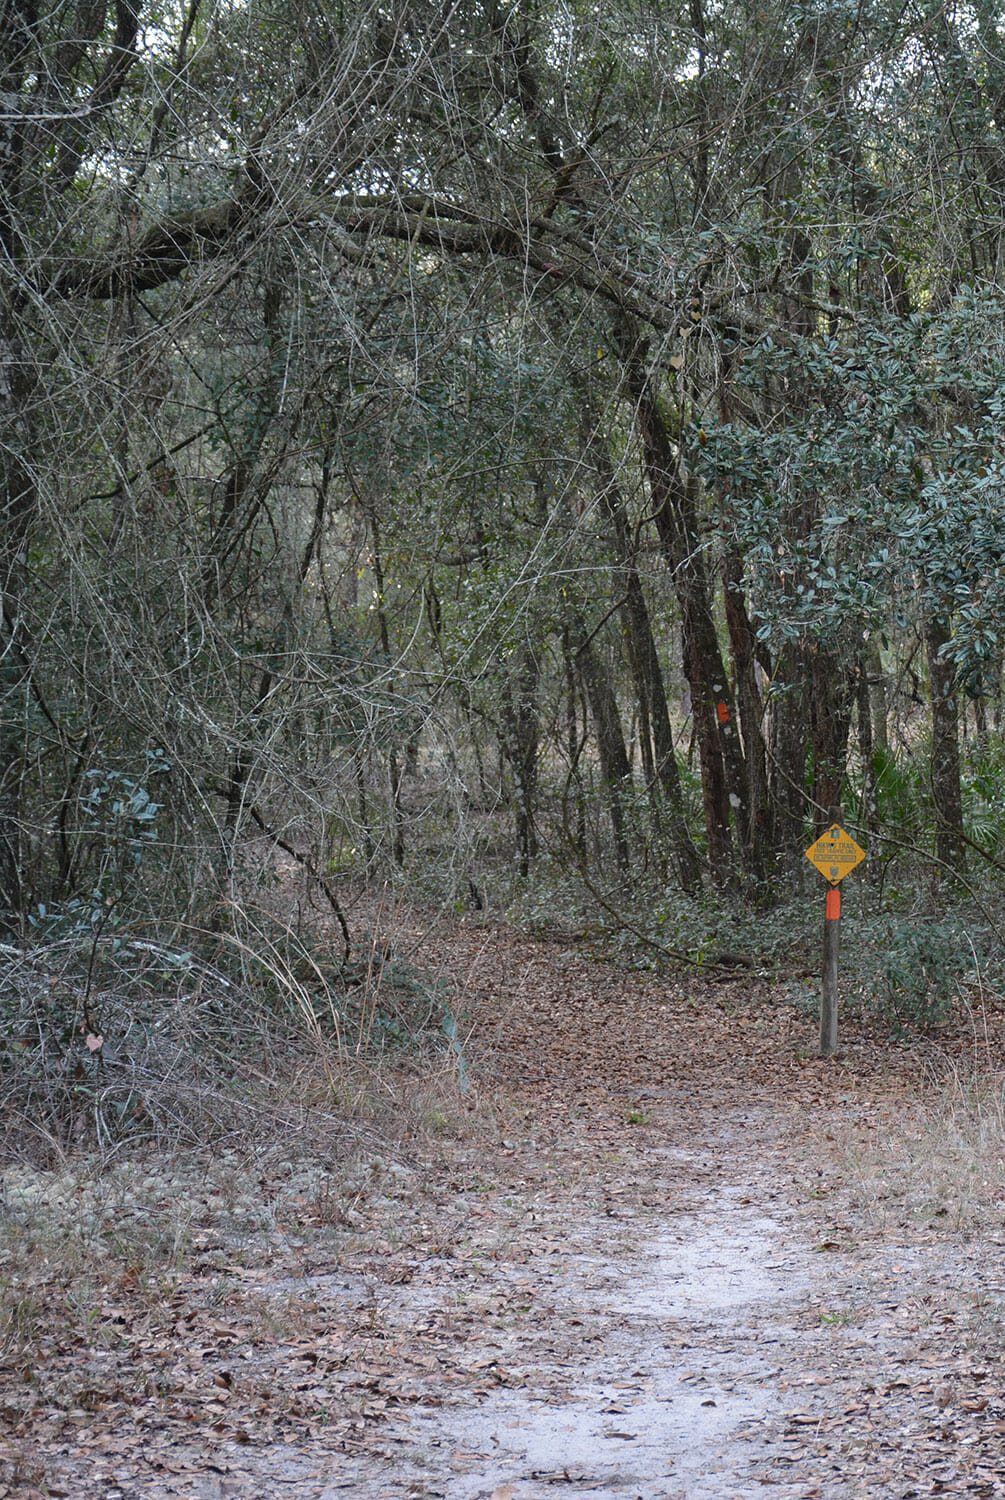 With three stacked loops containing 24.9 miles of marked footpaths, the Croom Hiking Trail is one of the oldest and driest loop hike destinations for backpackers on the Florida Trail.